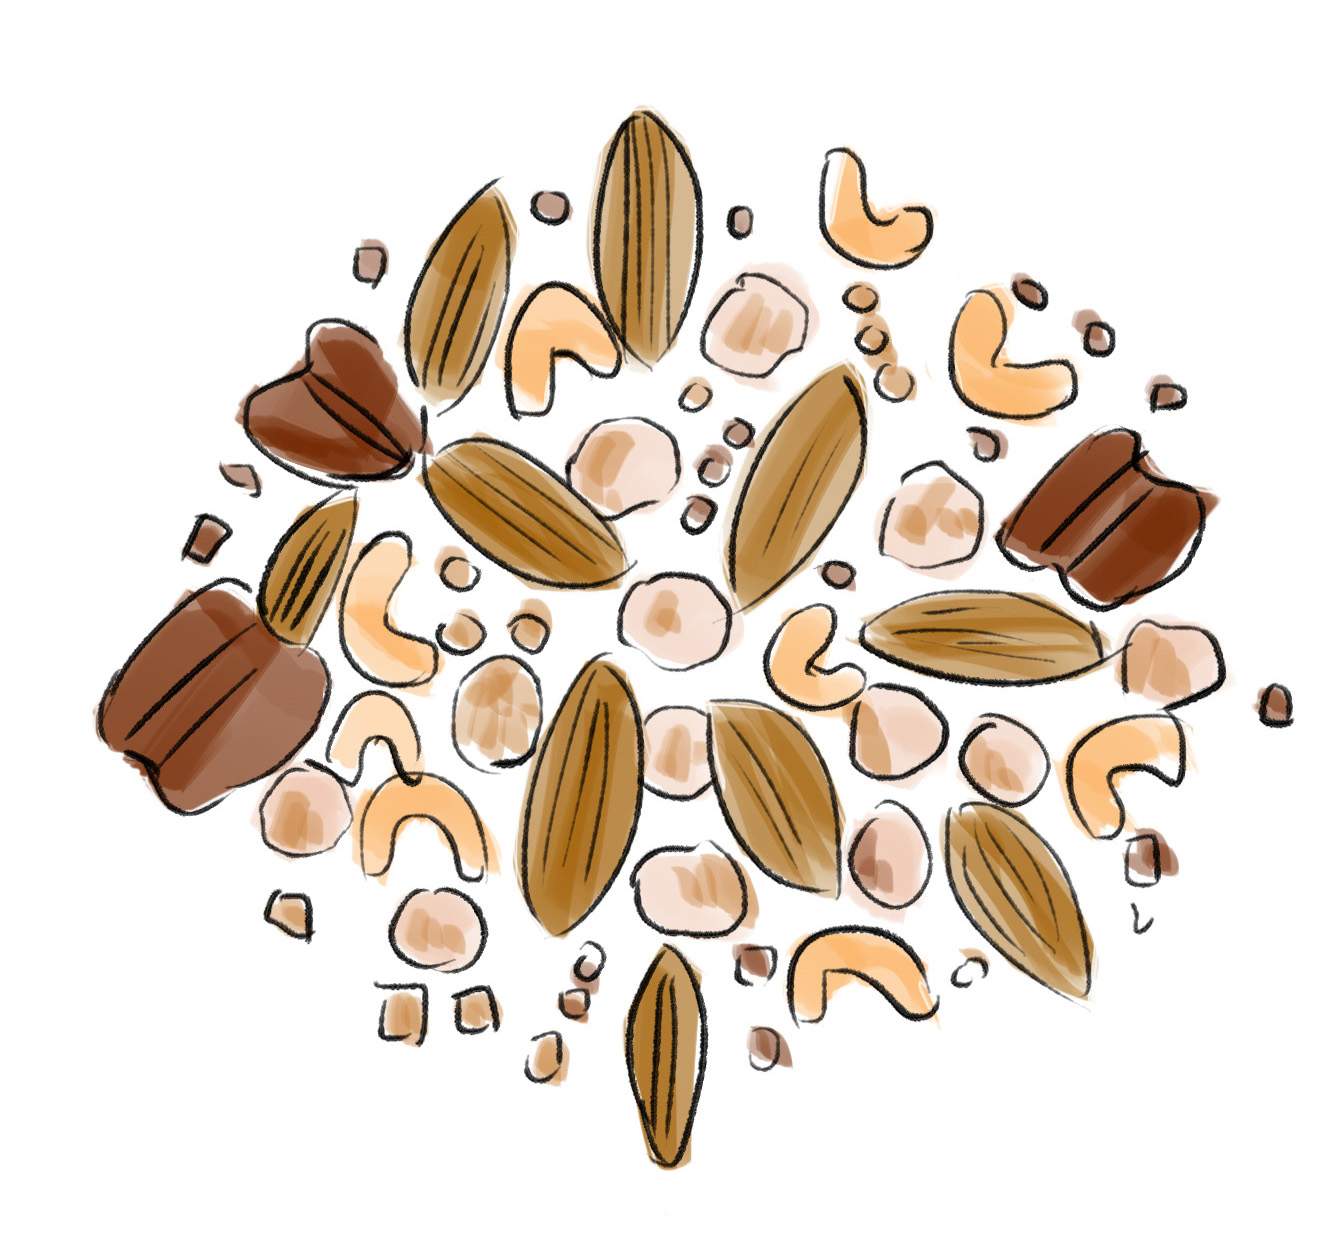 Nuts - healthy oils, vitamins, minerals